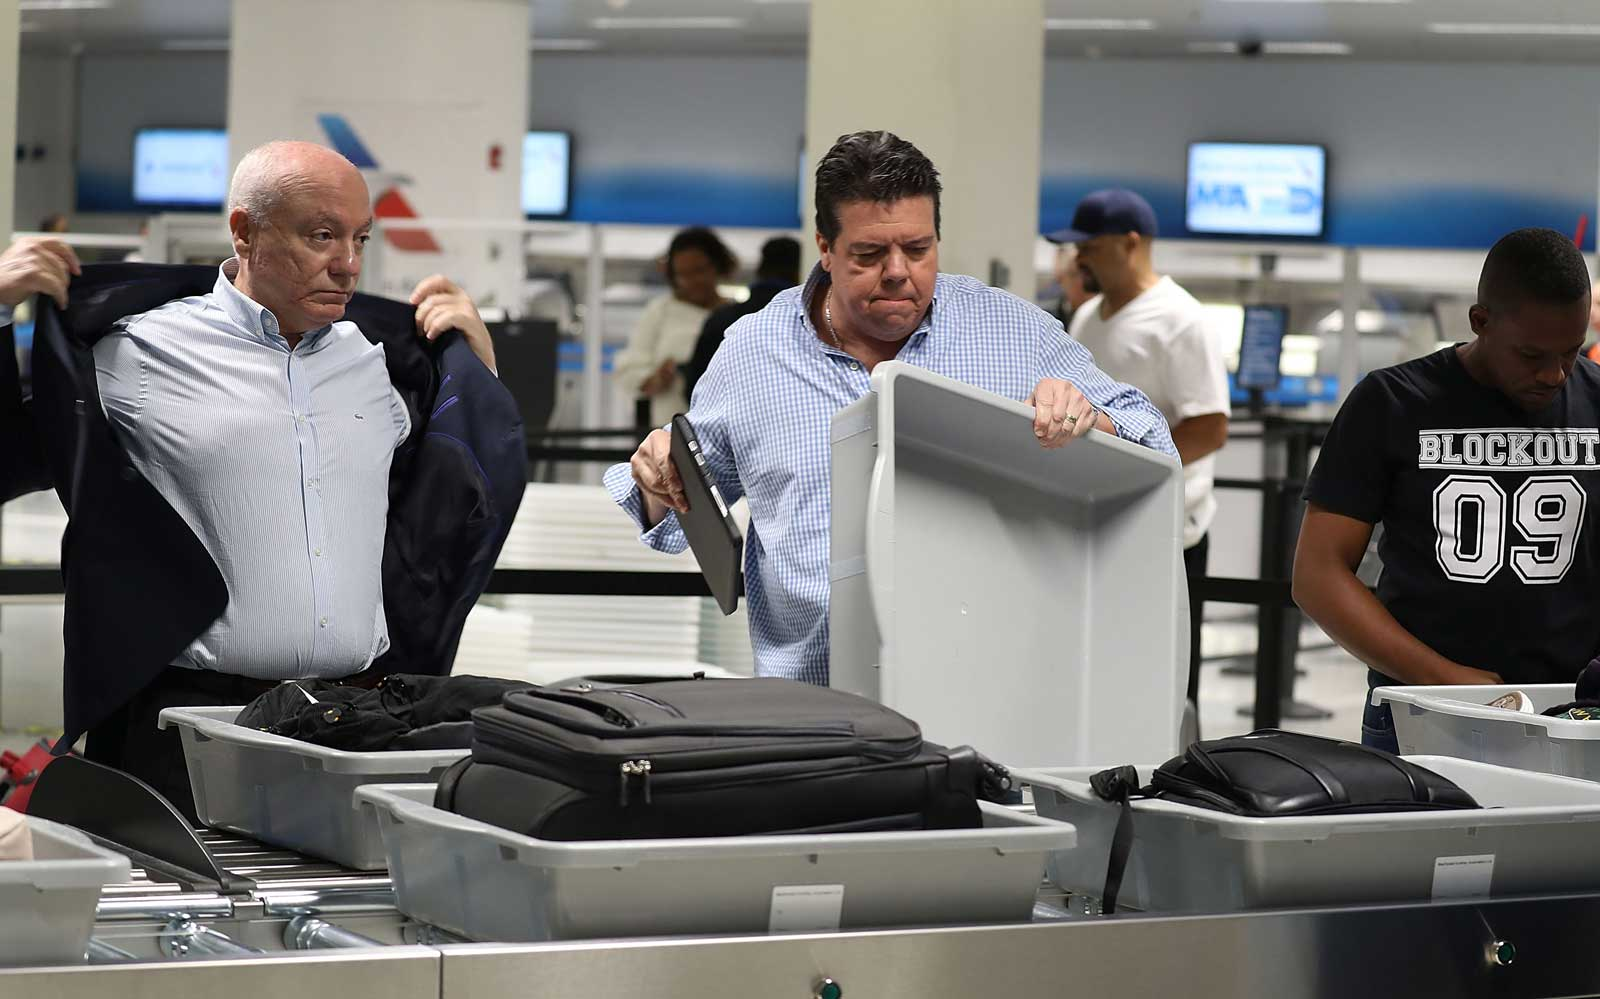 Airport Security with Laptops